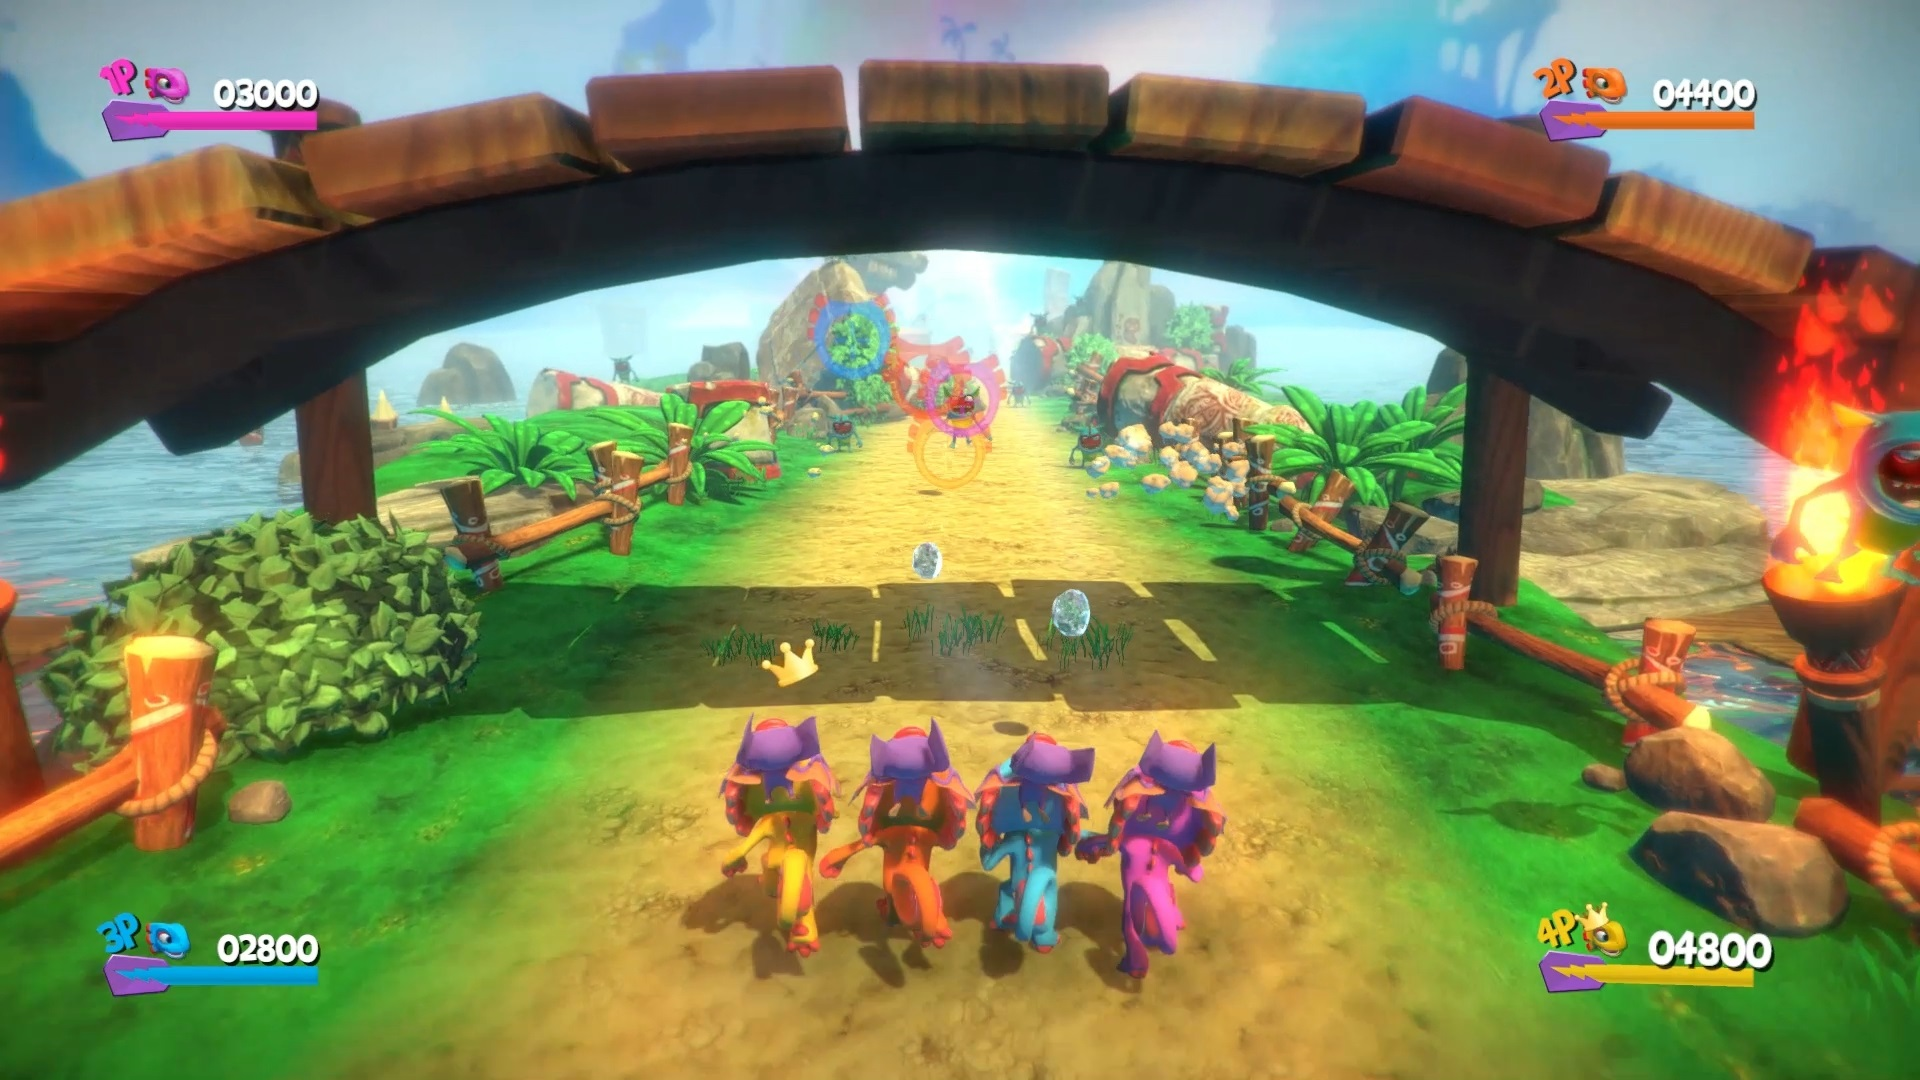 Yooka-Laylee multiplayer